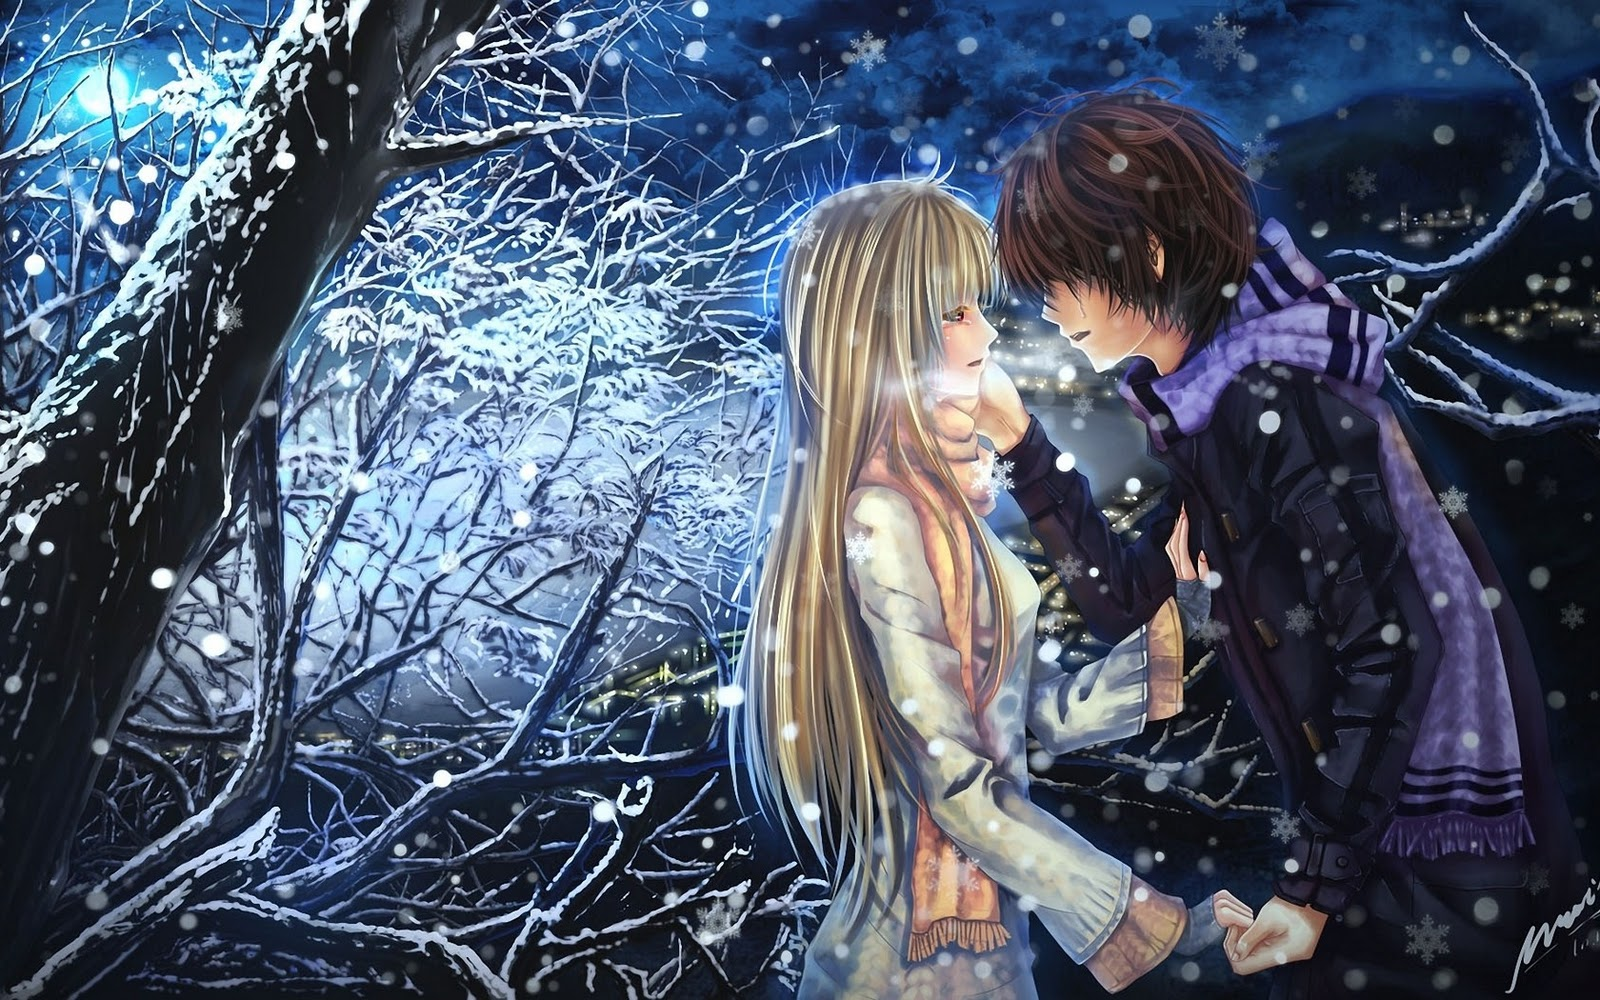 cartoon Love Full Hd Wallpaper : A2Z Wallpapers: Anime couples In Love Wallpapers